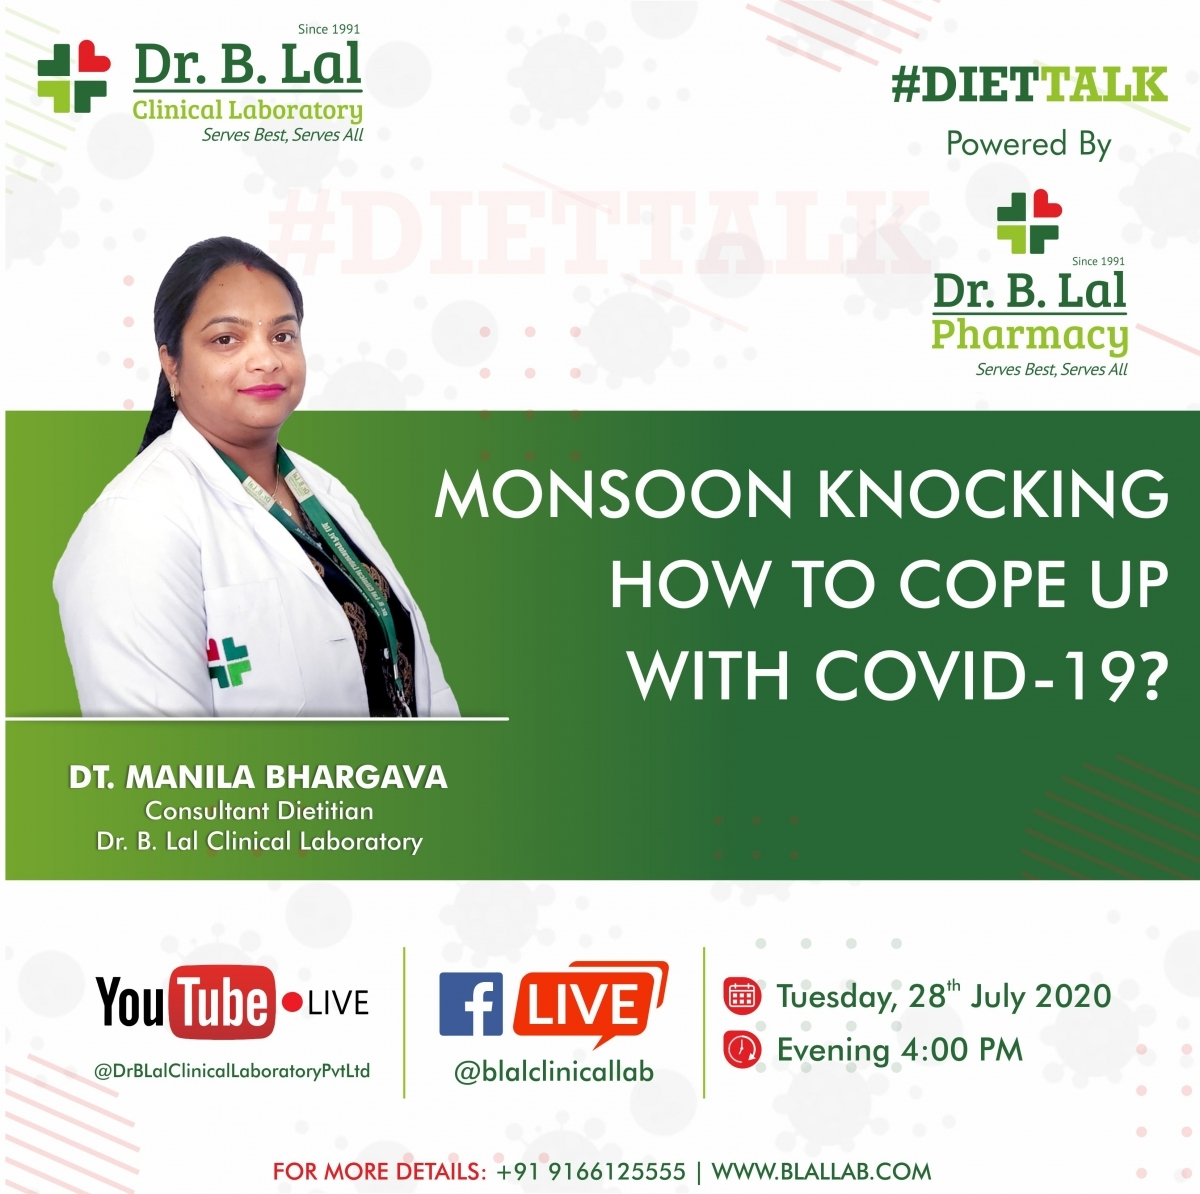 #DietTalk | Facebook & YouTube LIVE | Monsoon Knocking: How to cope up with COVID-19?